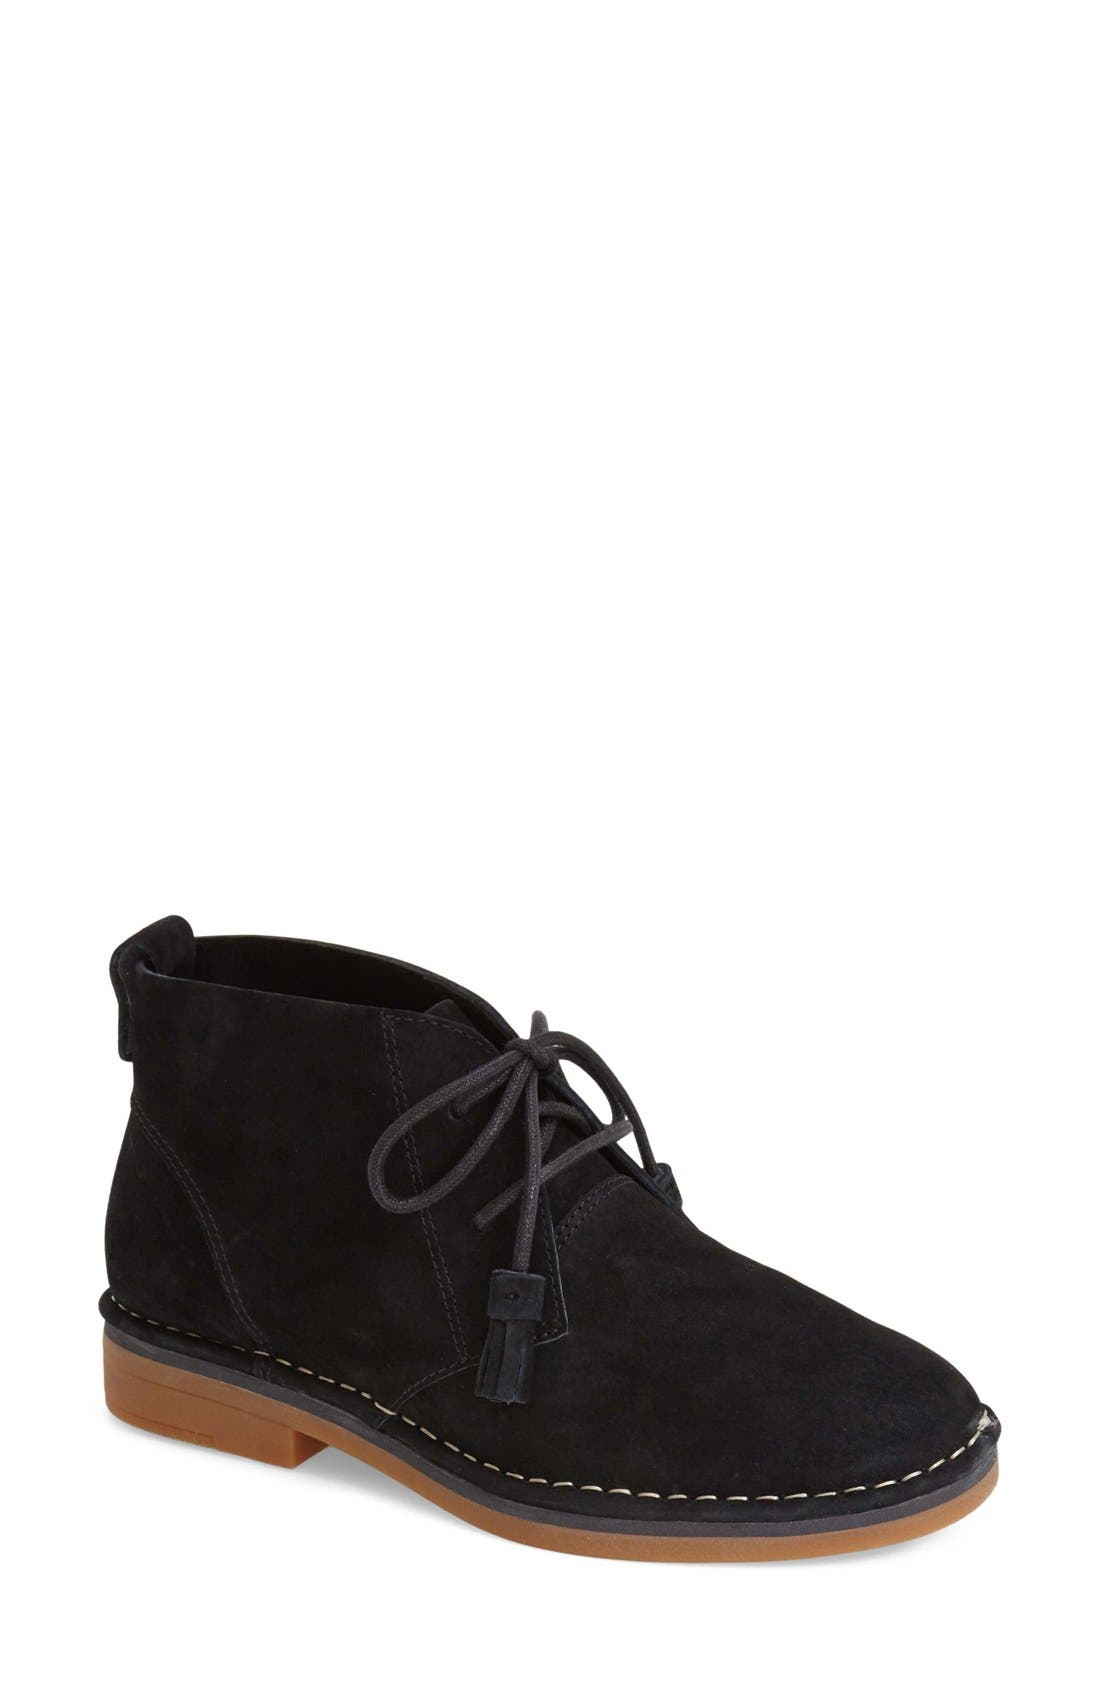 HUSH PUPPIES<SUP>®</SUP> Cyra Catelyn Chukka Boot, Main, color, BLACK SUEDE